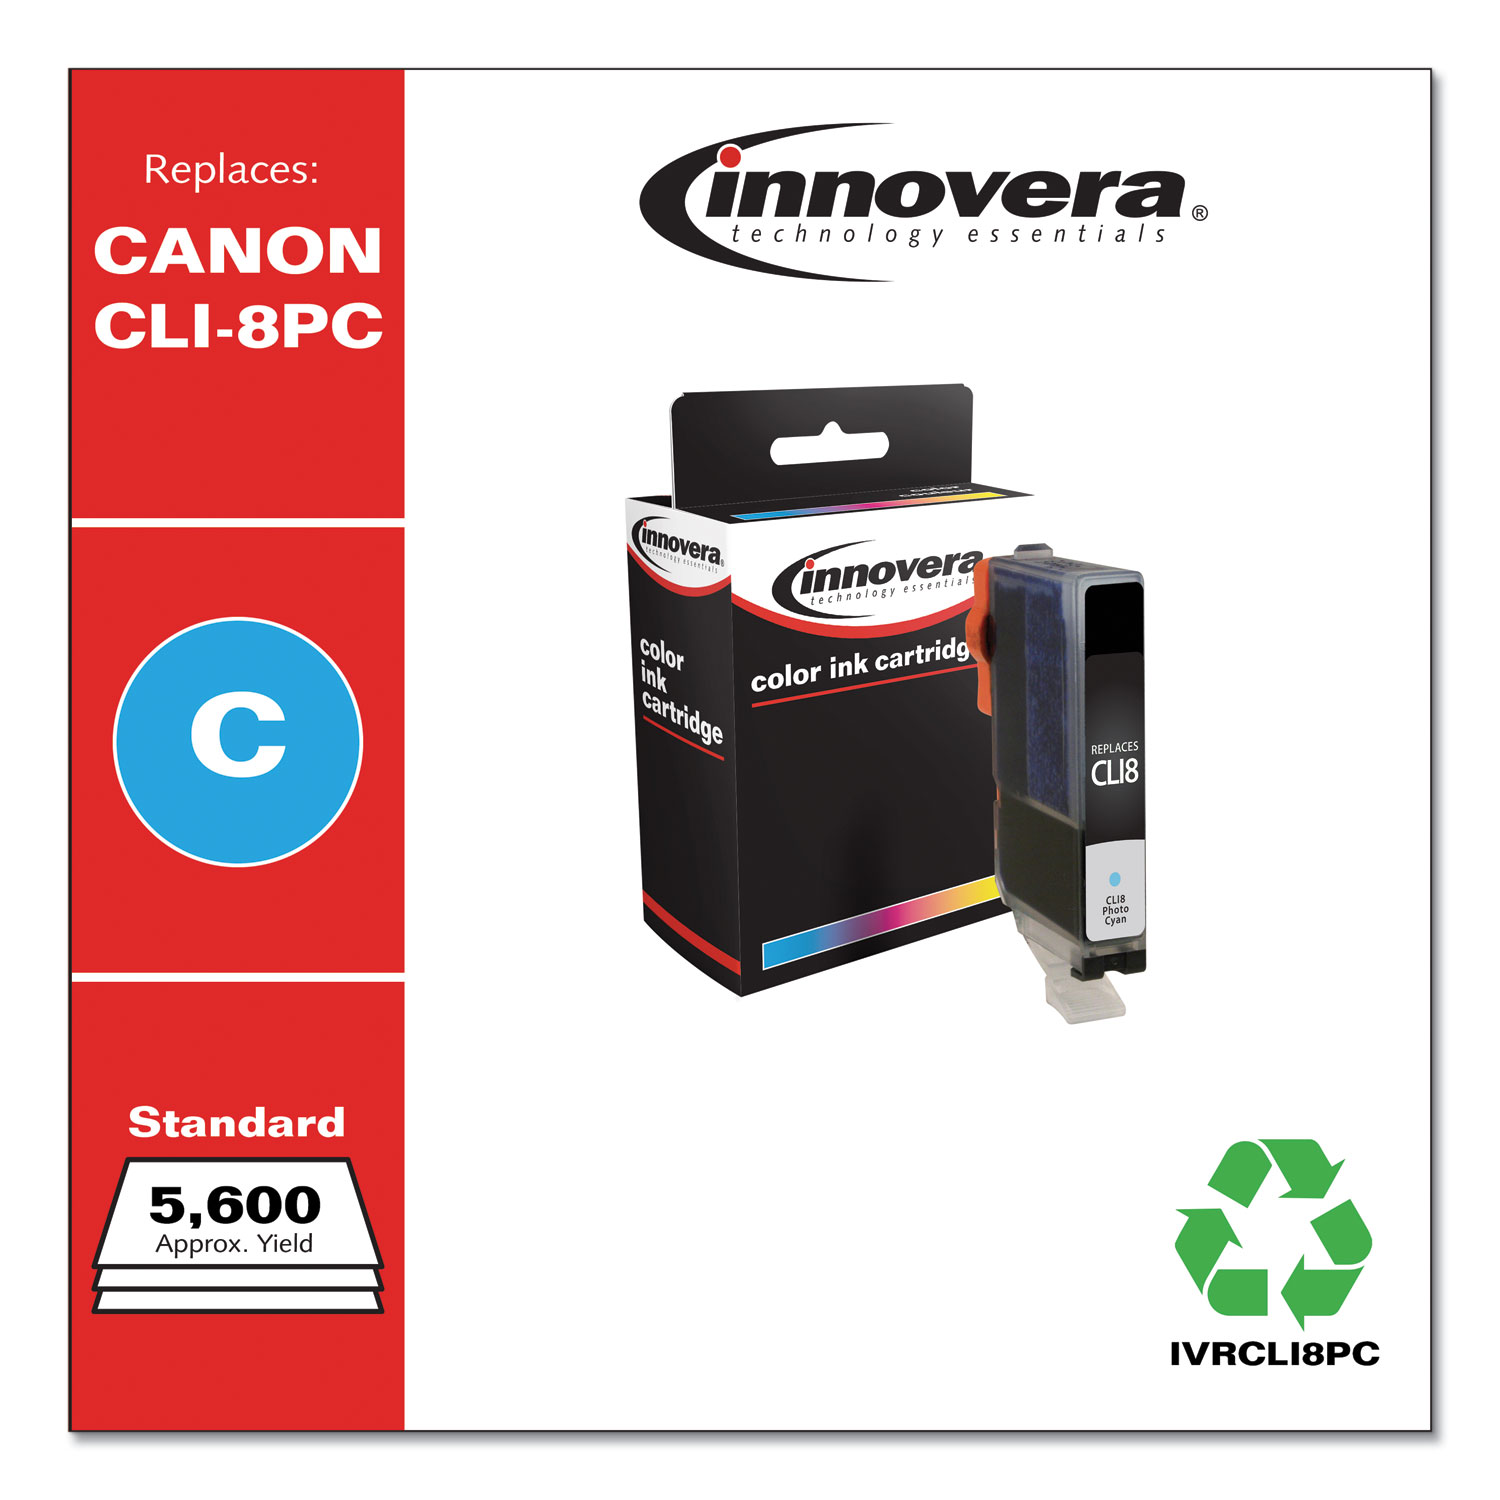 Remanufactured Photo Cyan Ink, Replacement for Canon CLI8PC (0624B002), 5,715 Page-Yield IVRCLI8PC